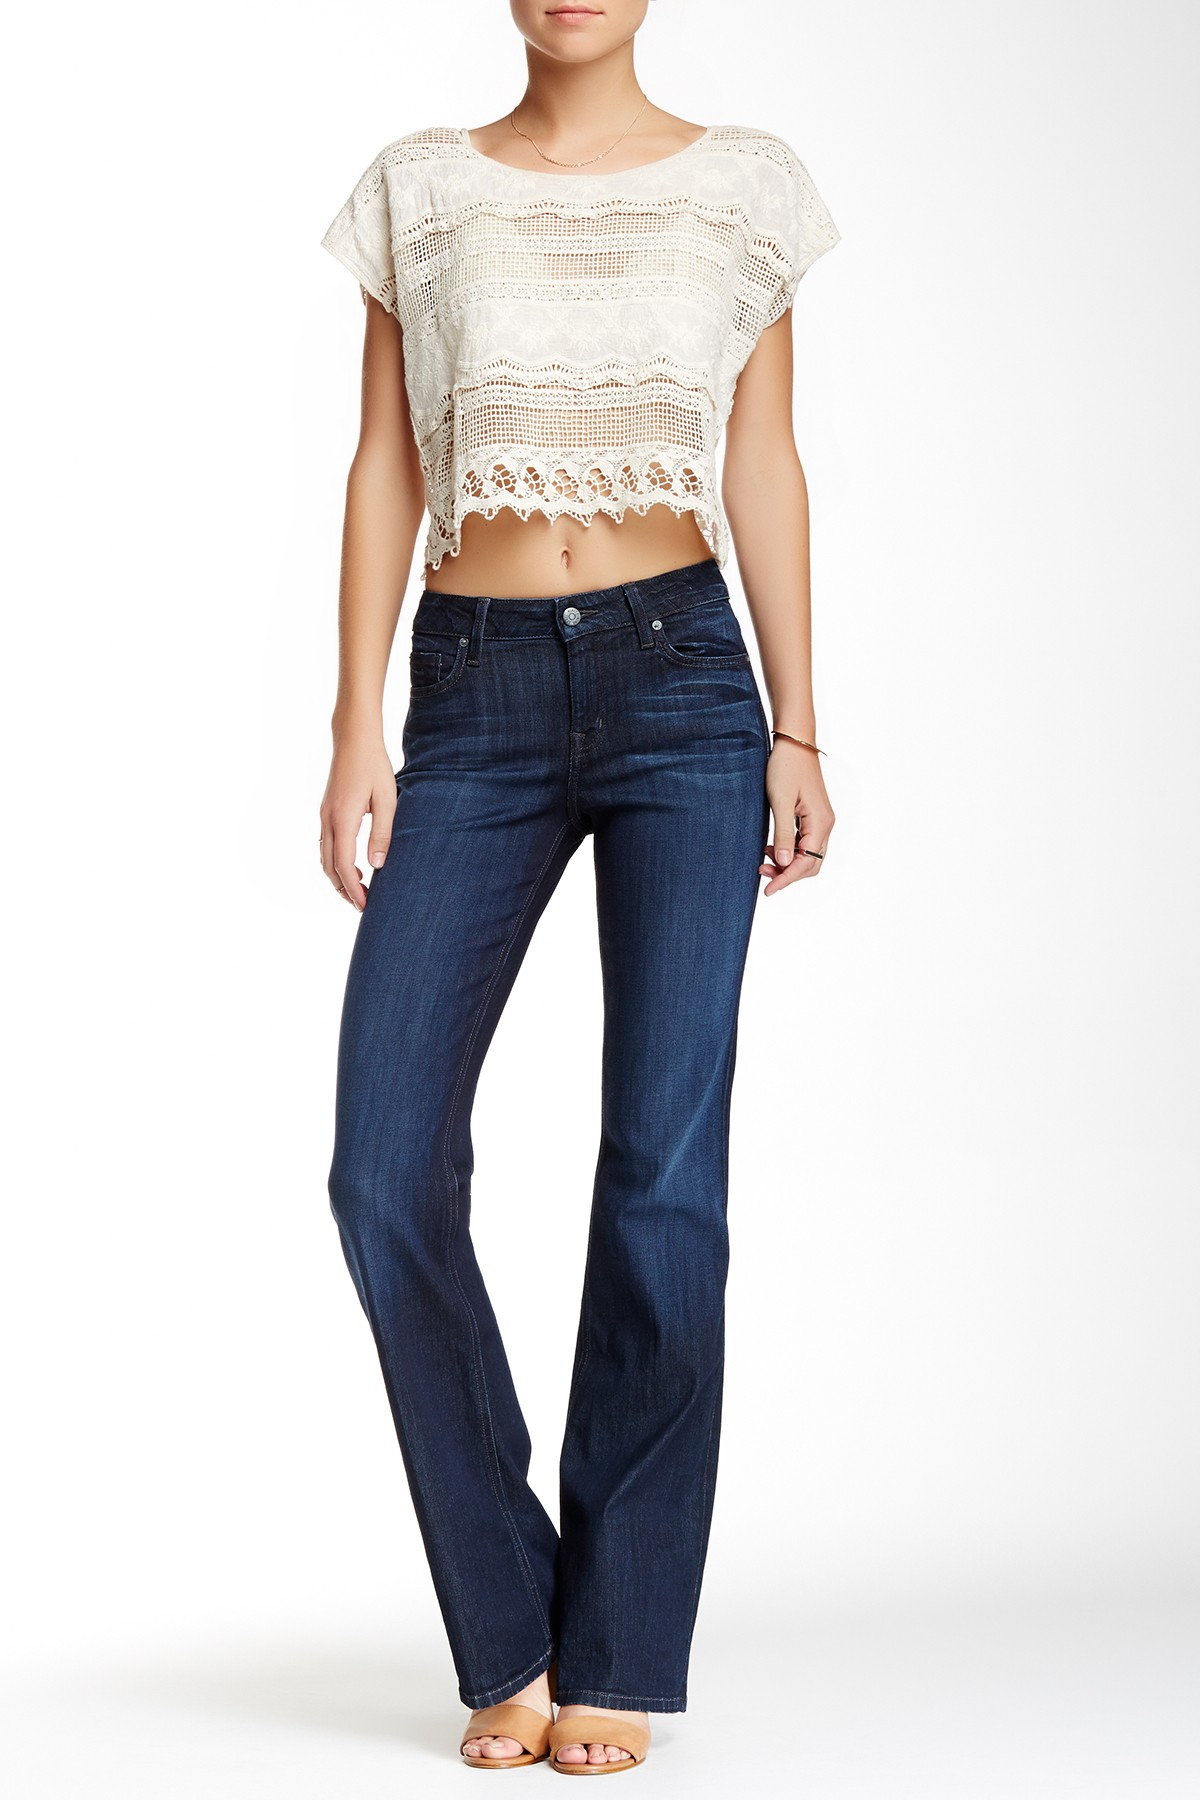 Level 99 Chloe Mid Rise Bootcut Jean In Blue Lyst